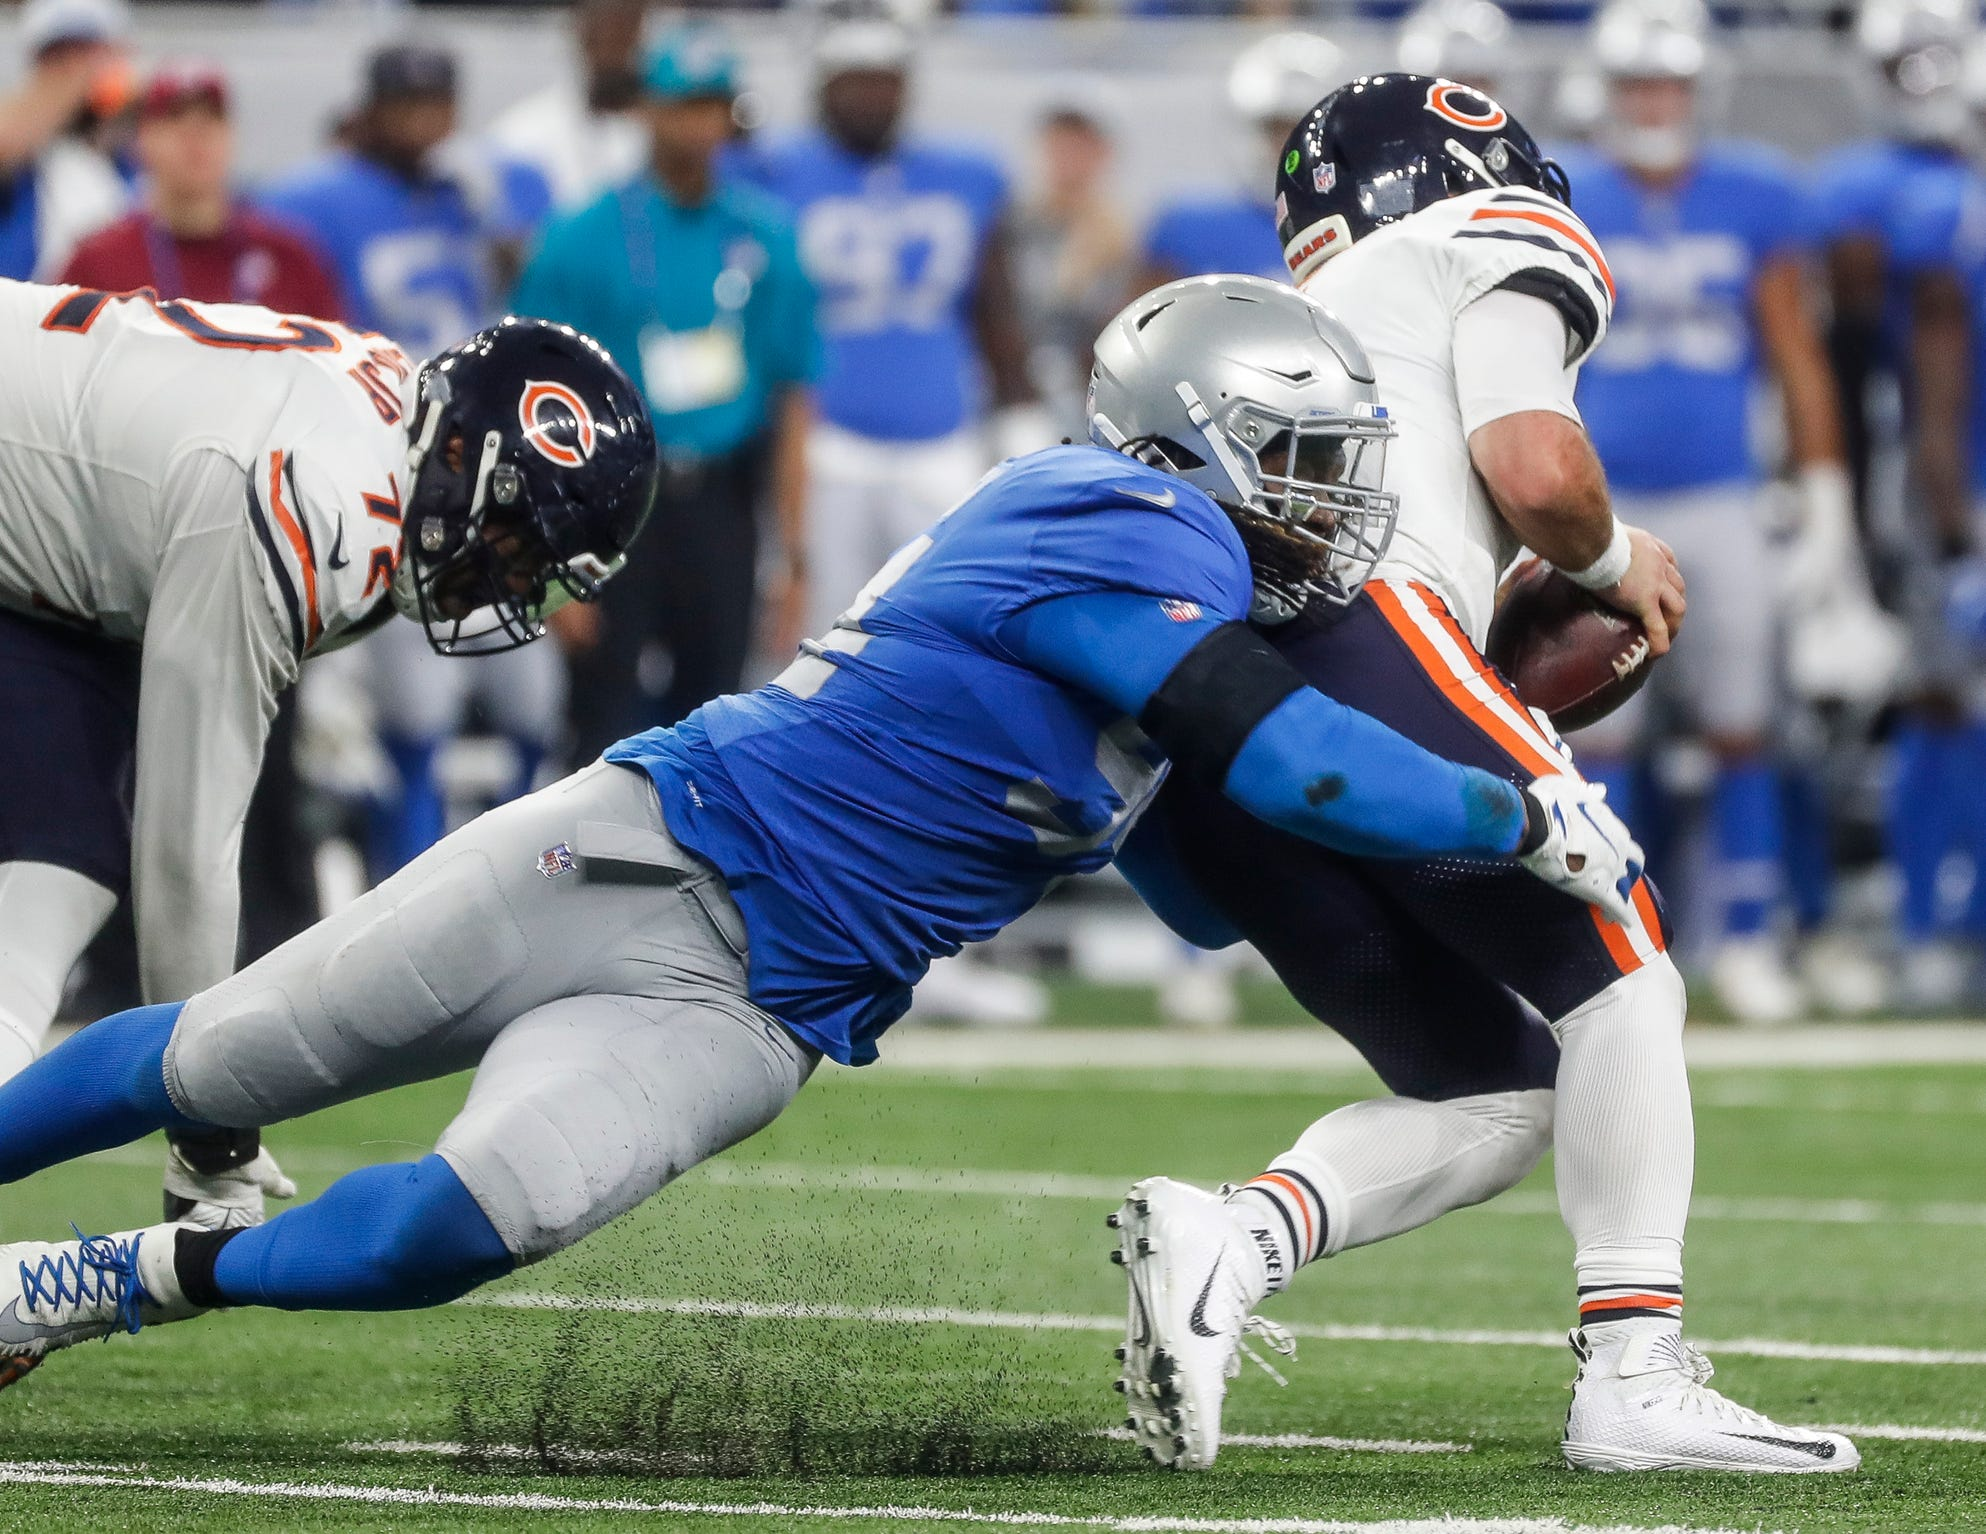 Ziggy Ansah, the Lions' top free agent, has visits lined up with the Buffalo Bills and New Orleans Saints.